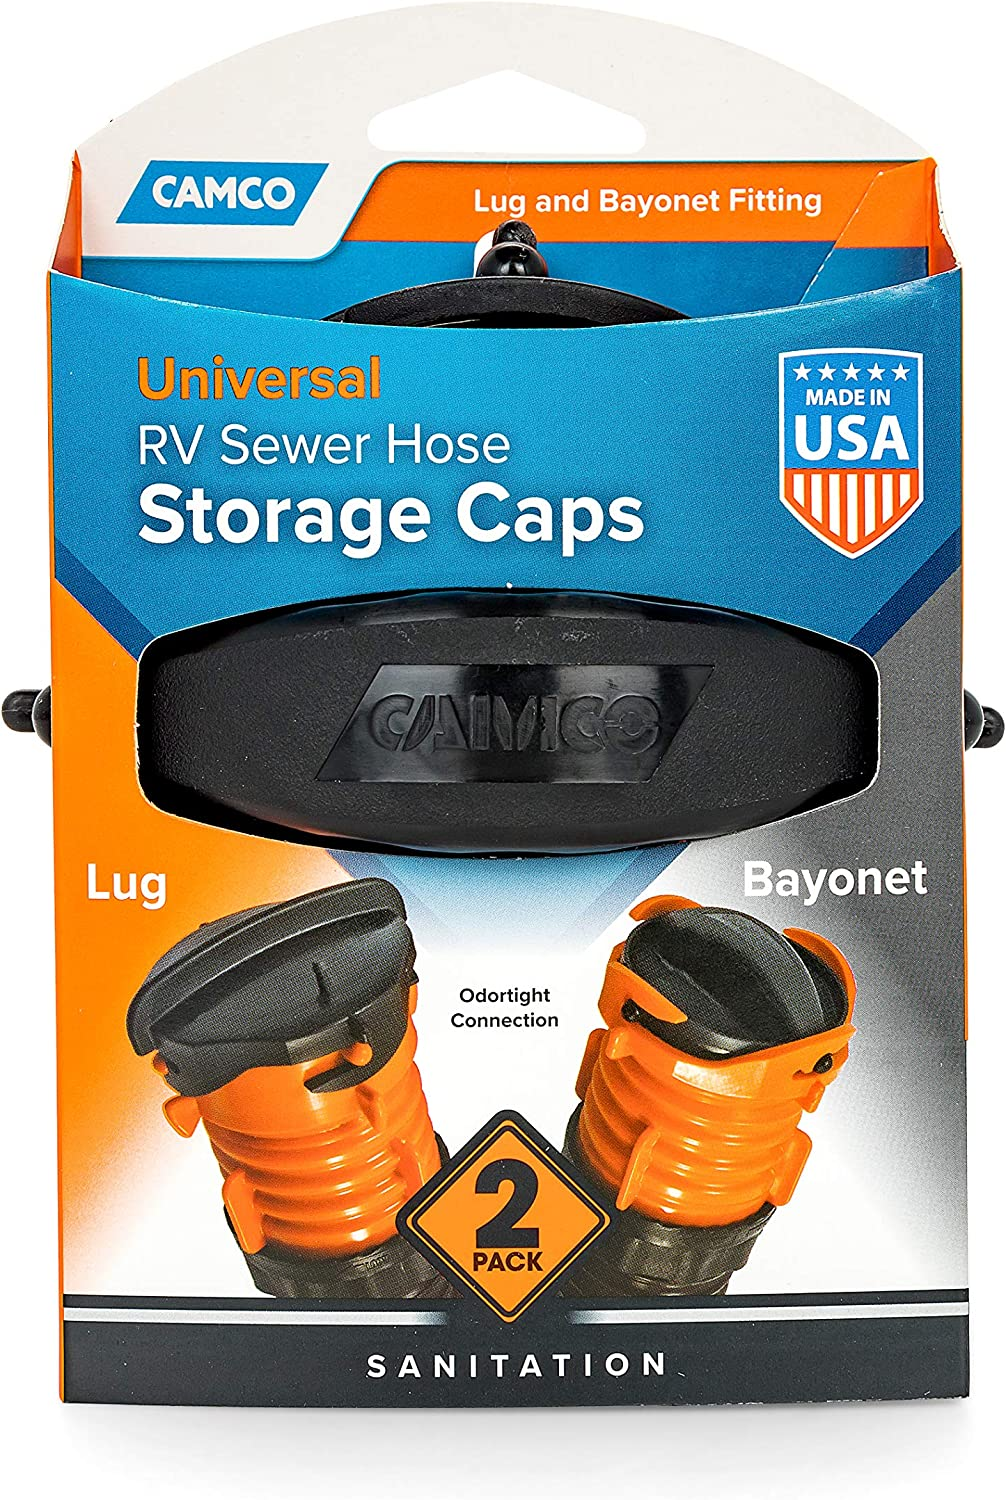 Lug and Bayonet Caps 2 Pack 39752 Camco RV Sewer Hose Storage Cap Set Odor and Leak Proof Connection Allows You to Seal Both Ends of Your Sewer Hose Before Storing